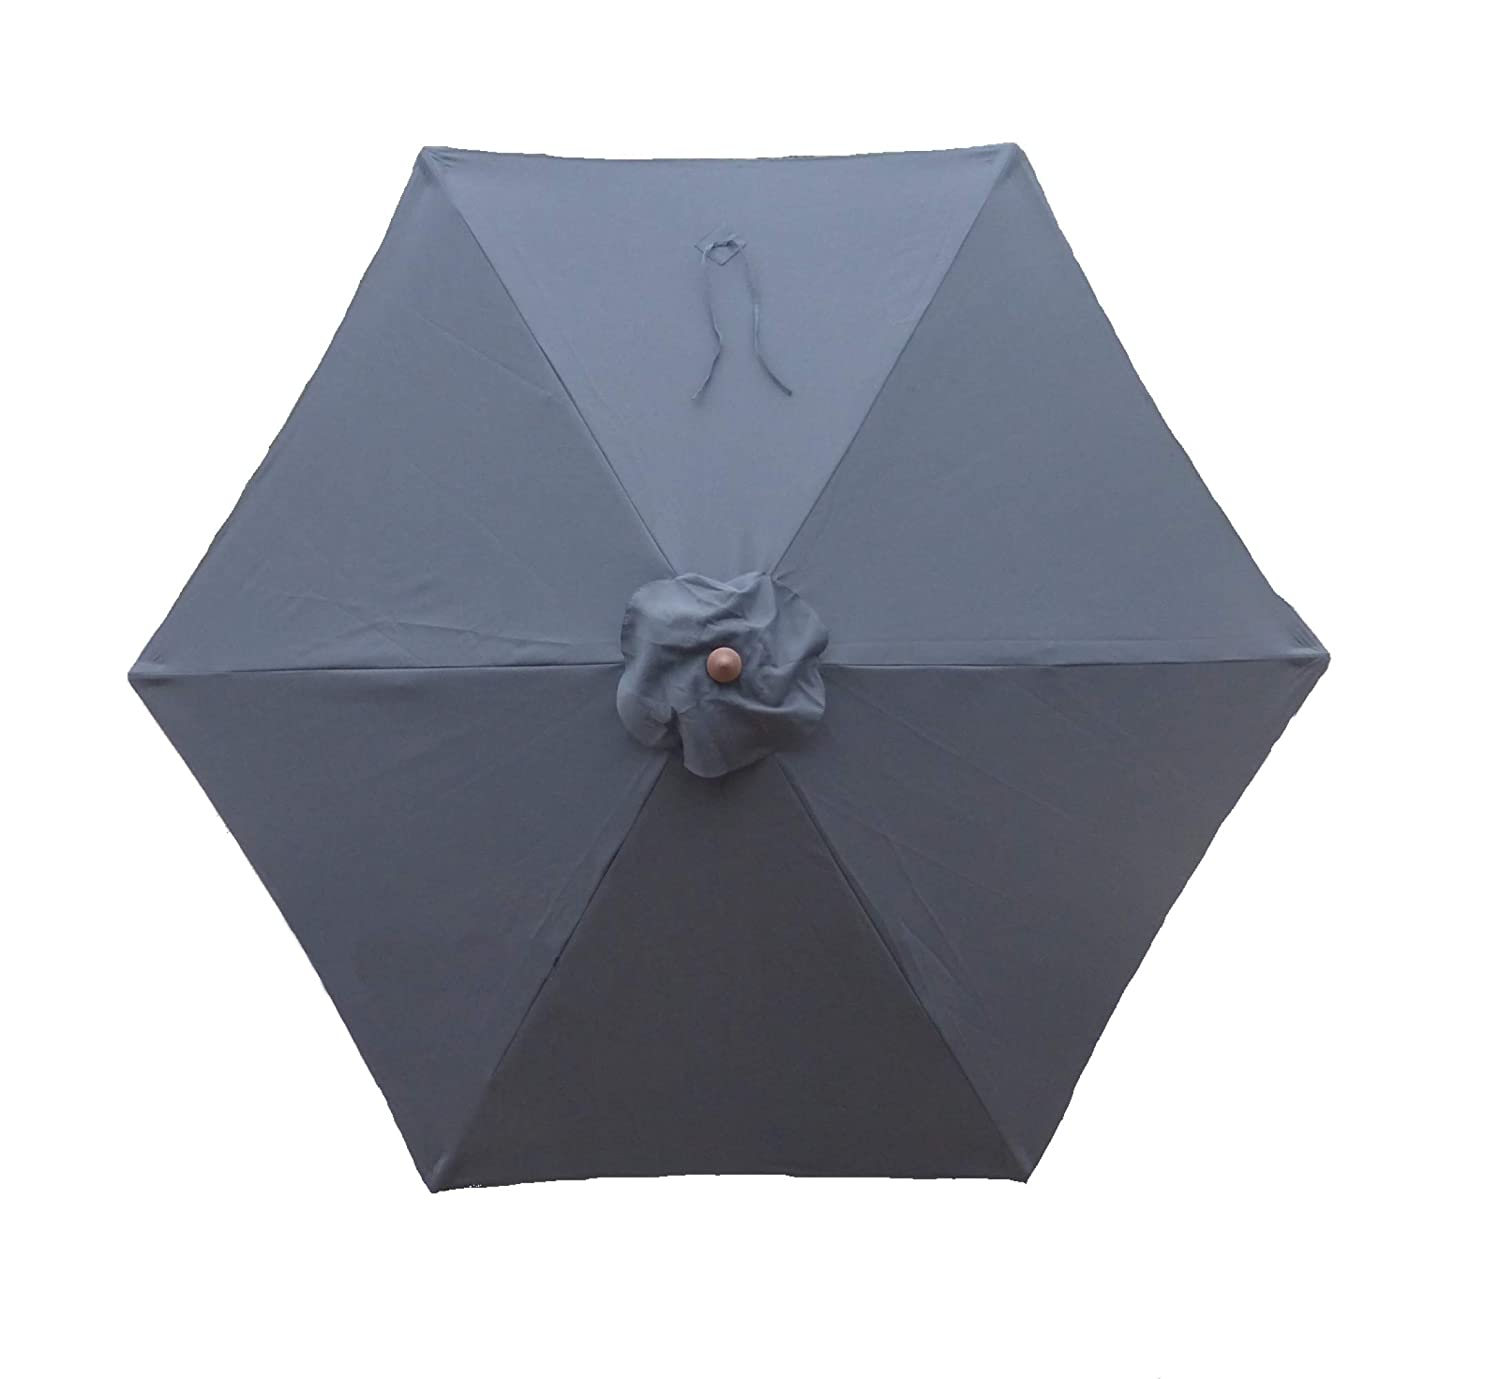 Formosa Covers 9ft Umbrella Replacement Canopy 6 Ribs in Charcoal Grey Canopy Only